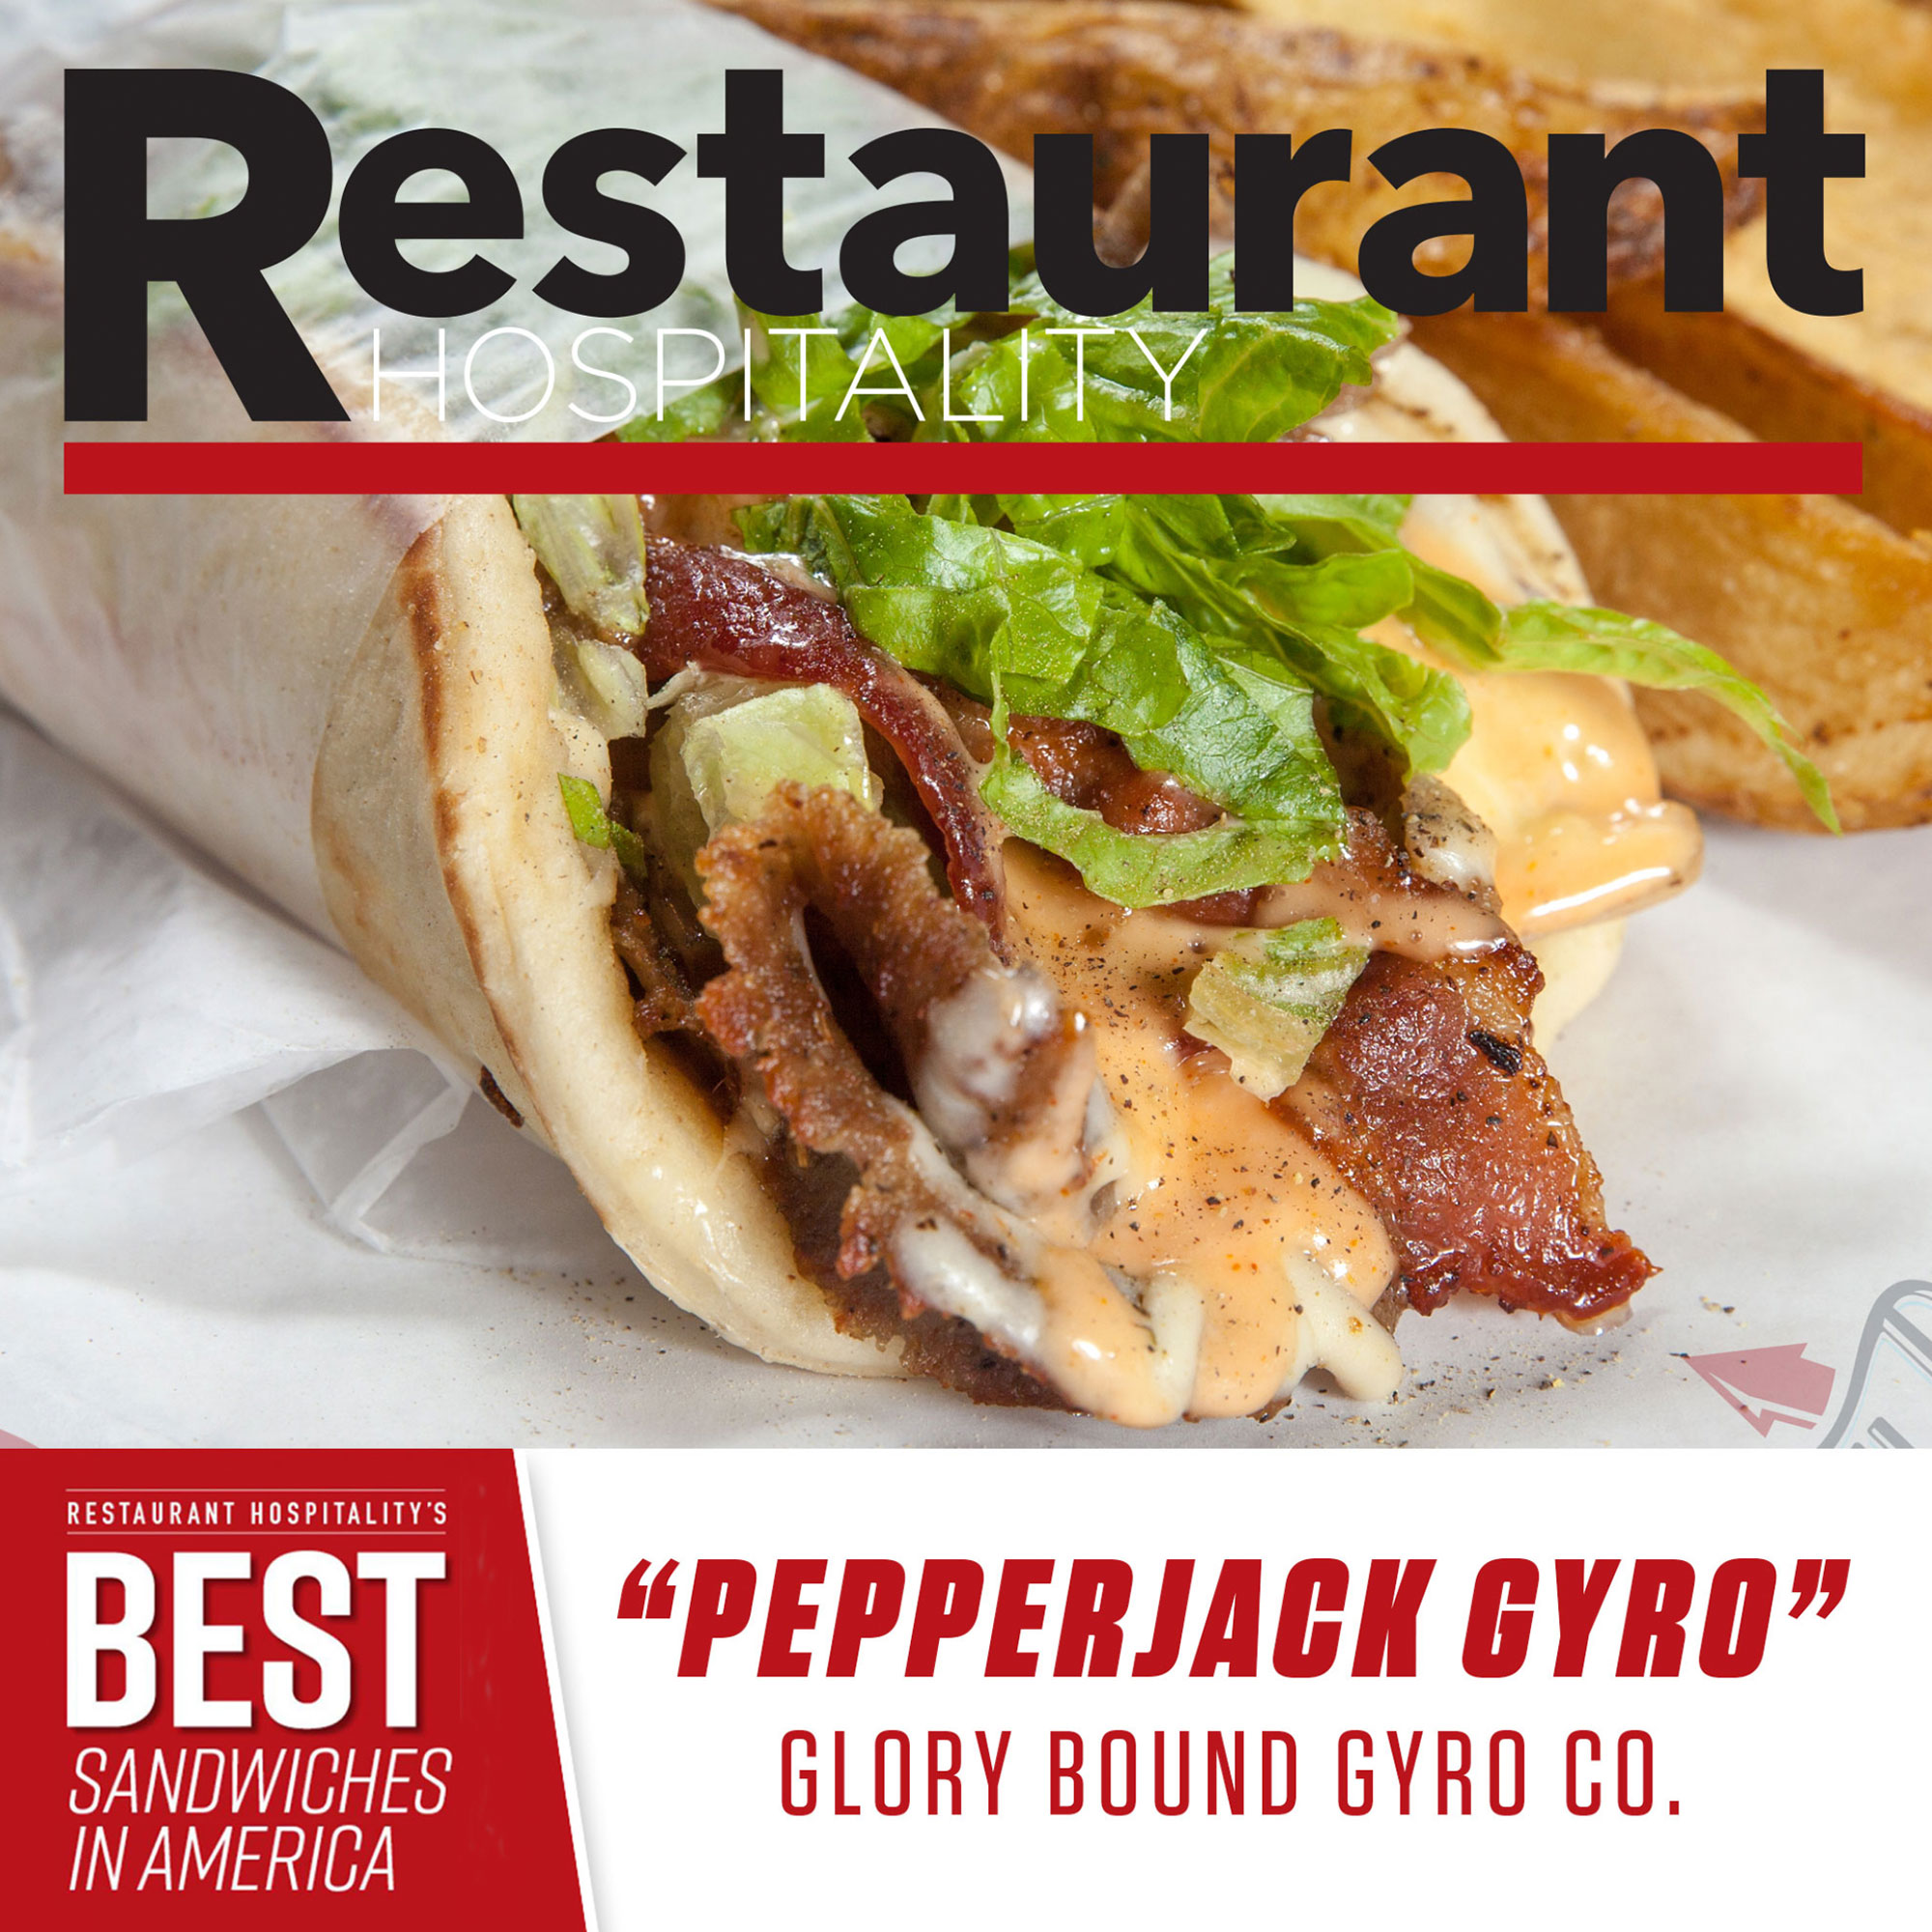 Product Recognition: Photography, Print, Web, Social Media  Glory Bound Gyro Co.